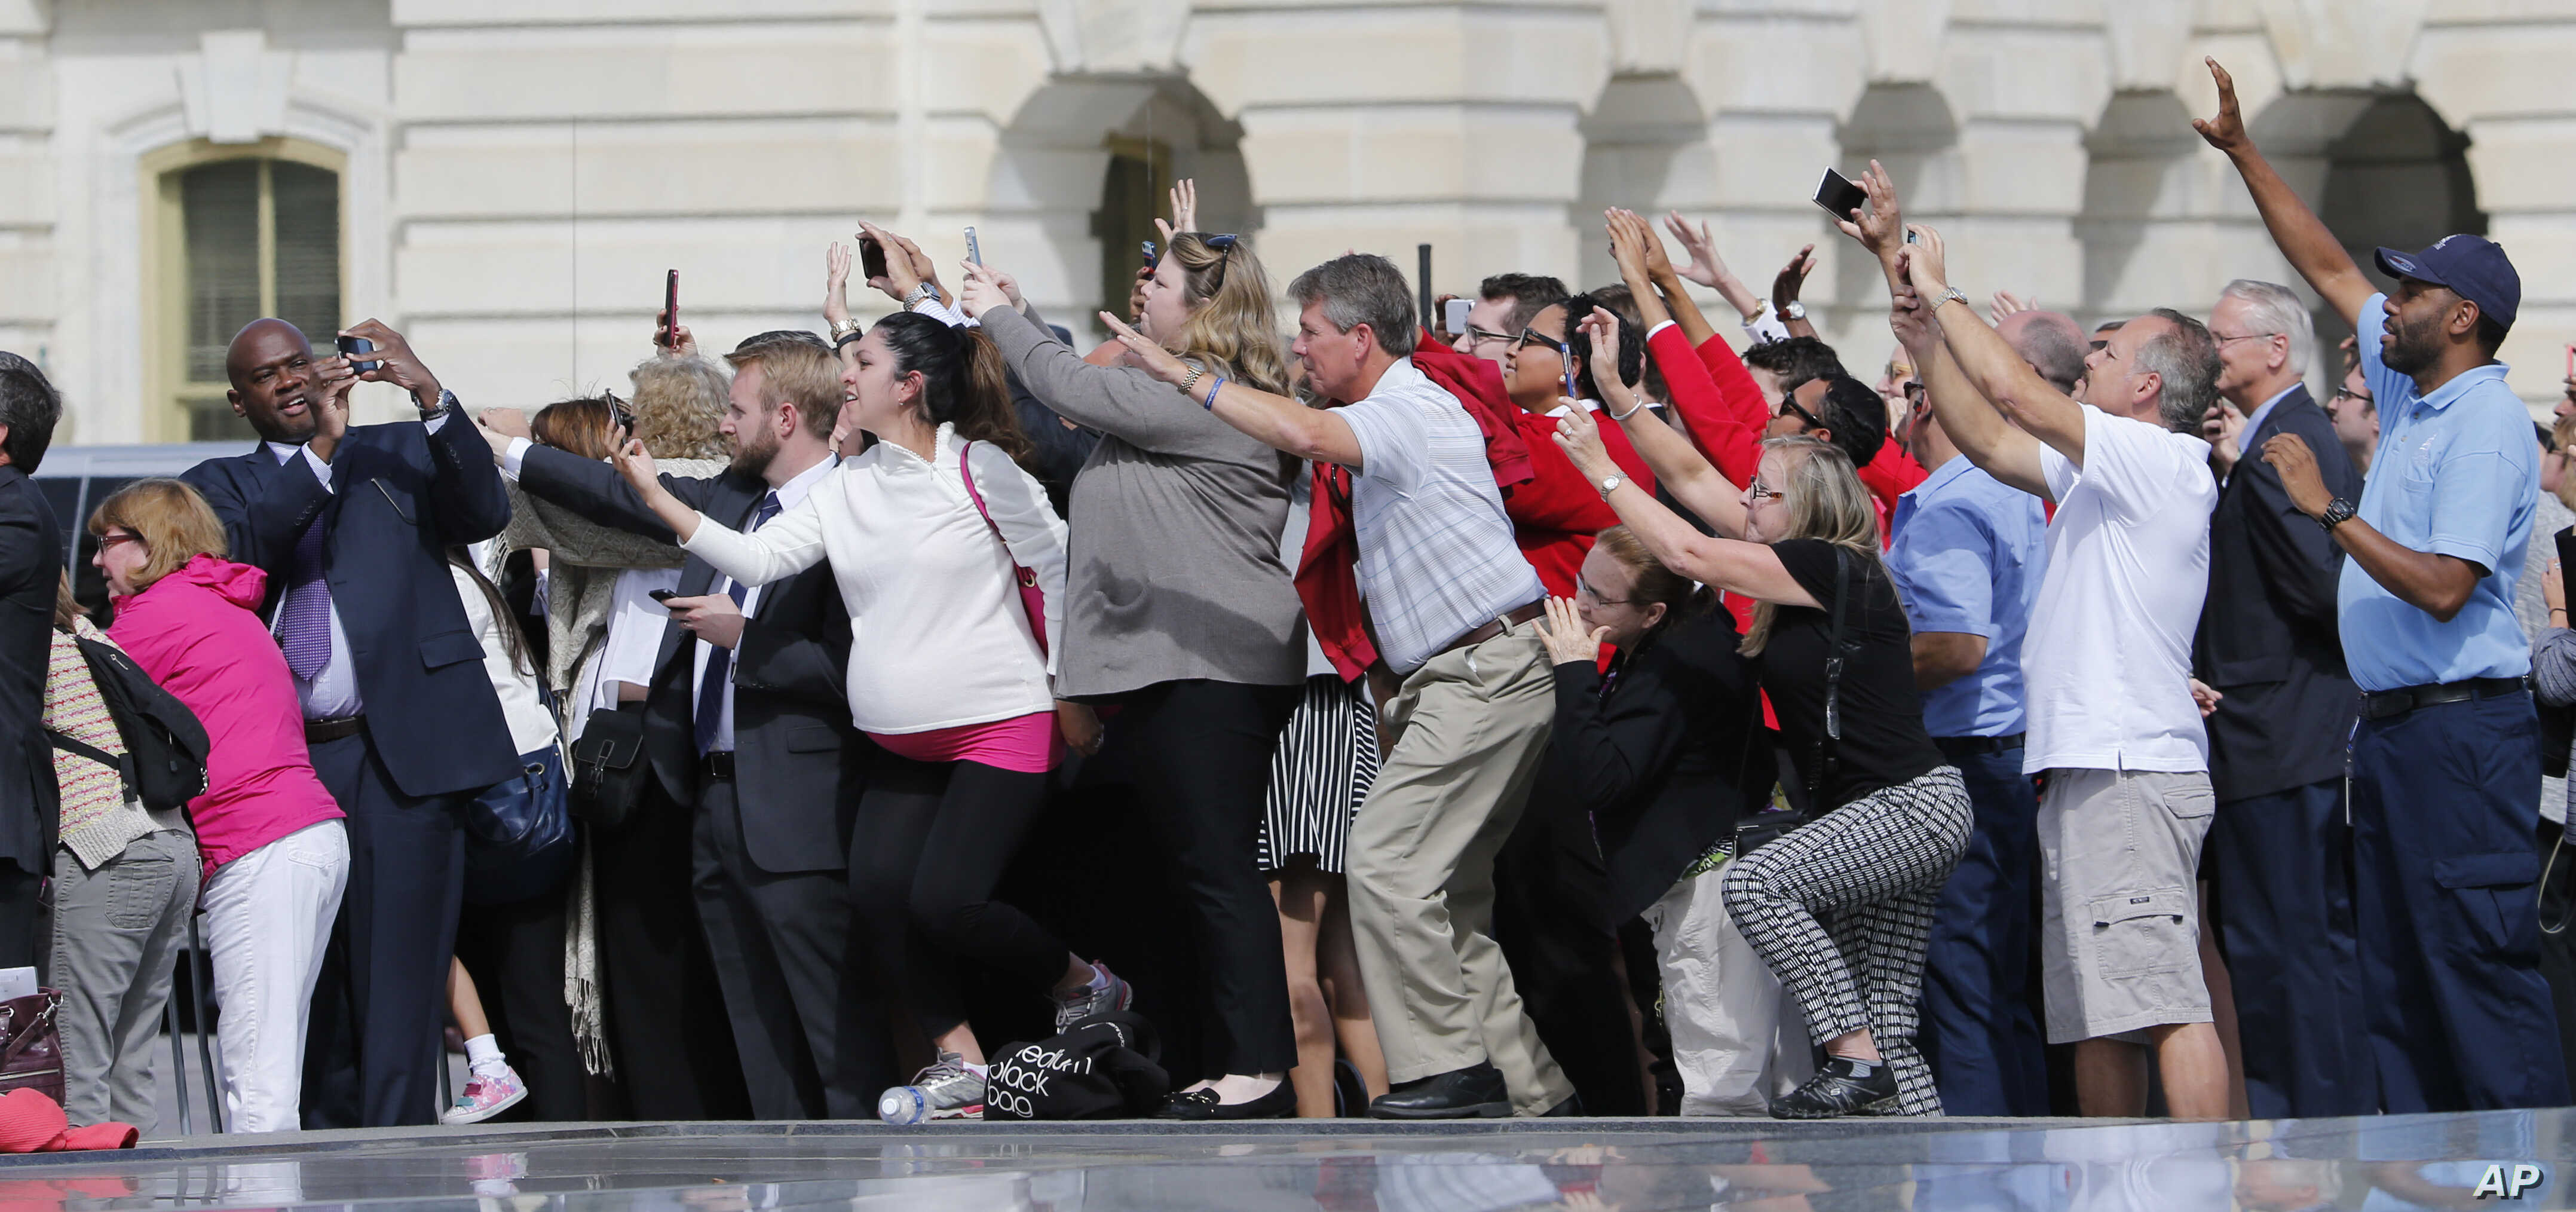 Congressional staffers and guests strain to view and photograph the departure of Pope Francis in his Fiat 500L, on Capitol Hill in Washington after his speech before a joint meeting of Congress, Sept. 24, 2015.